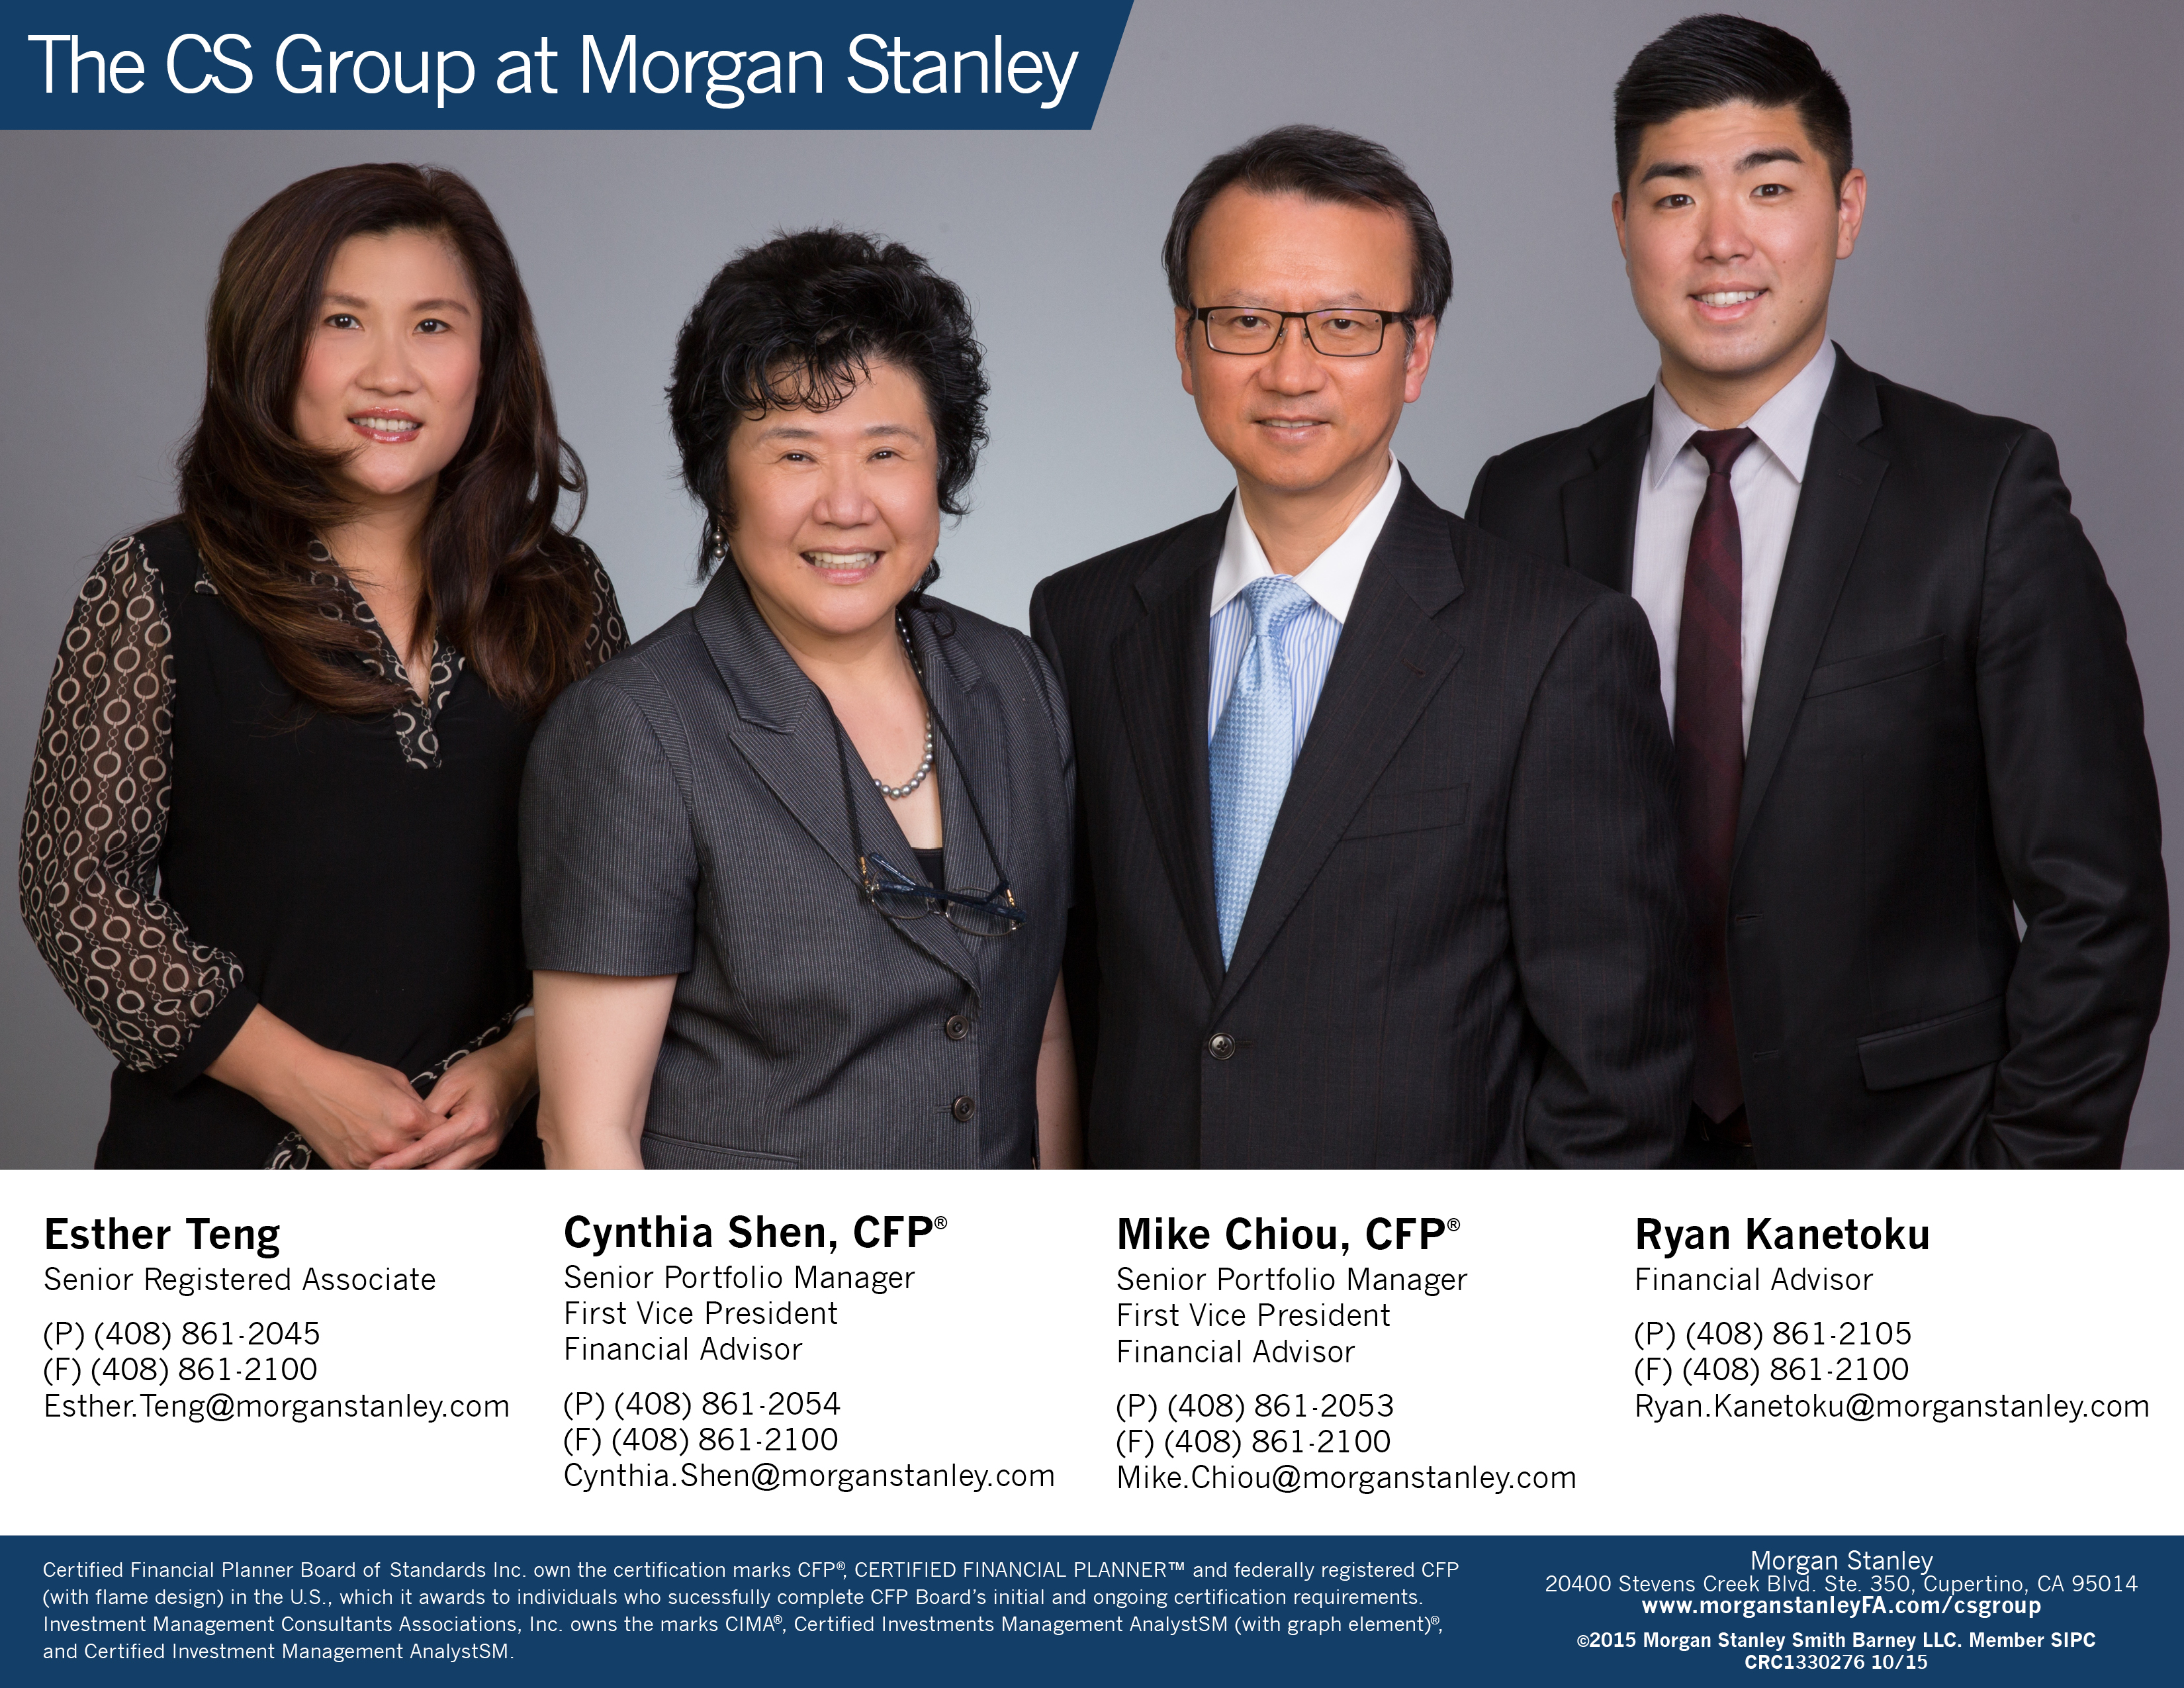 Morgan Stanley CS Group horizontal ad